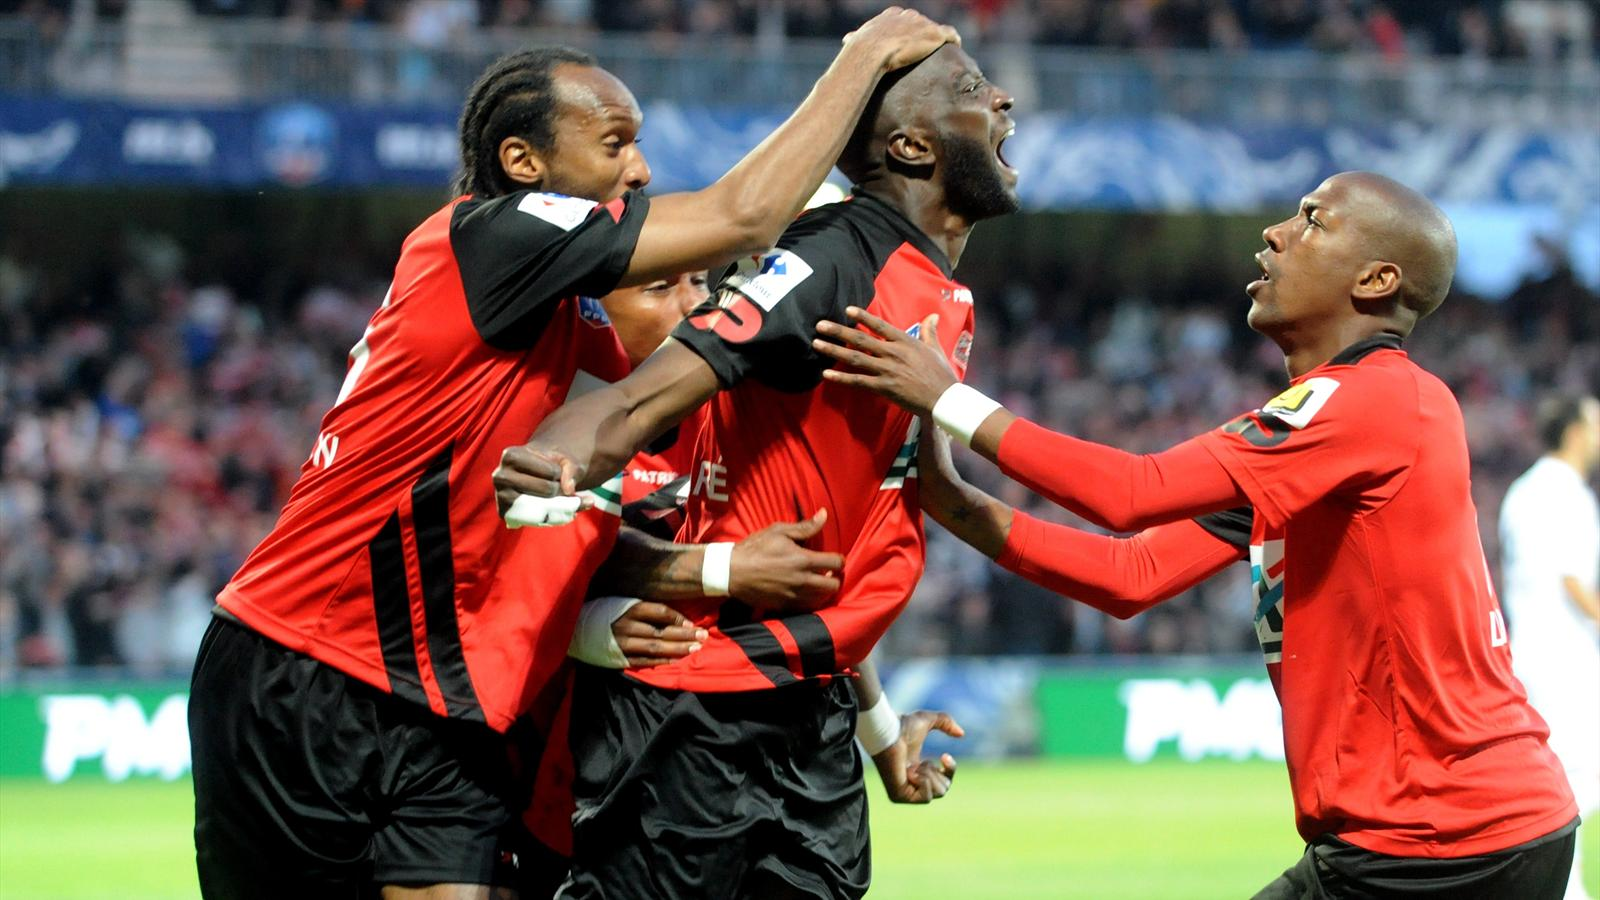 Match EA Guingamp vs PAOK Salonique en direct streaming live